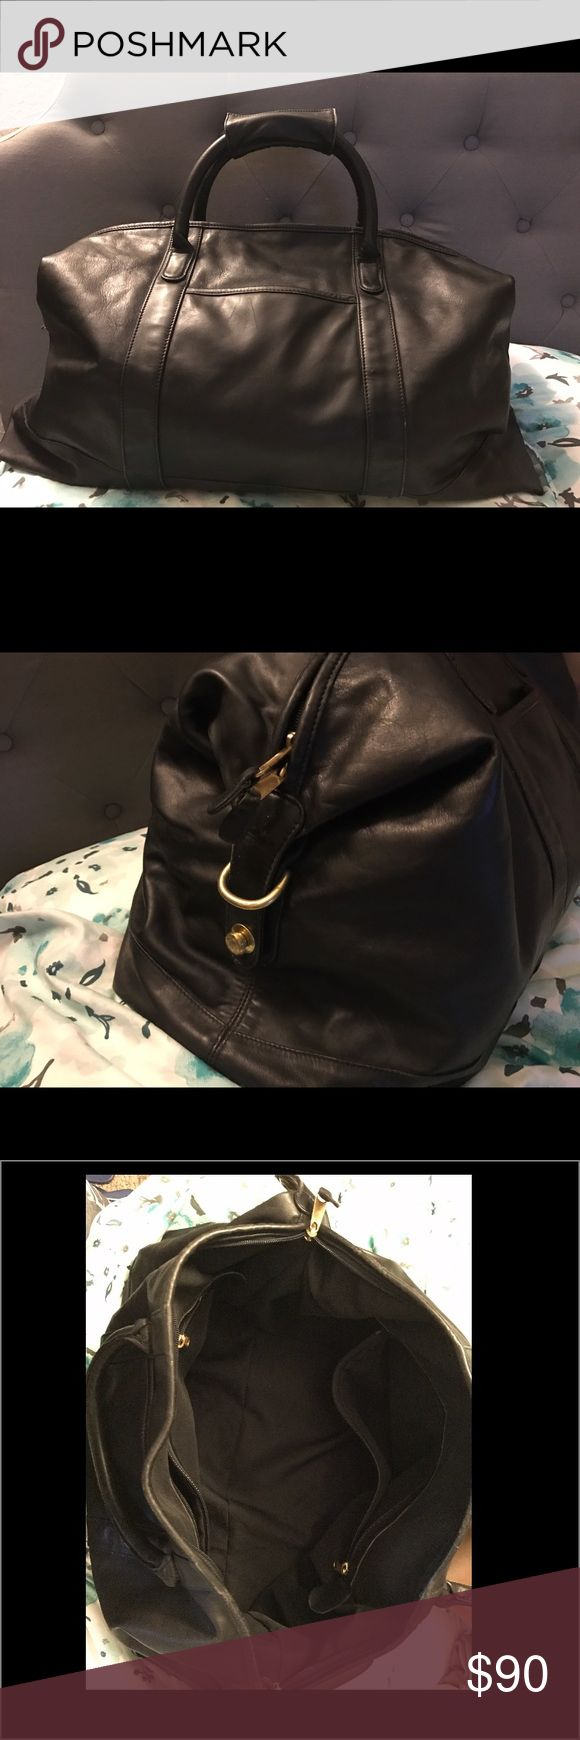 Coach Duffle Bag Vintage Coach Duffle Bag-Very good condition. Integrity of the bag is great. Coach Bags Travel Bags